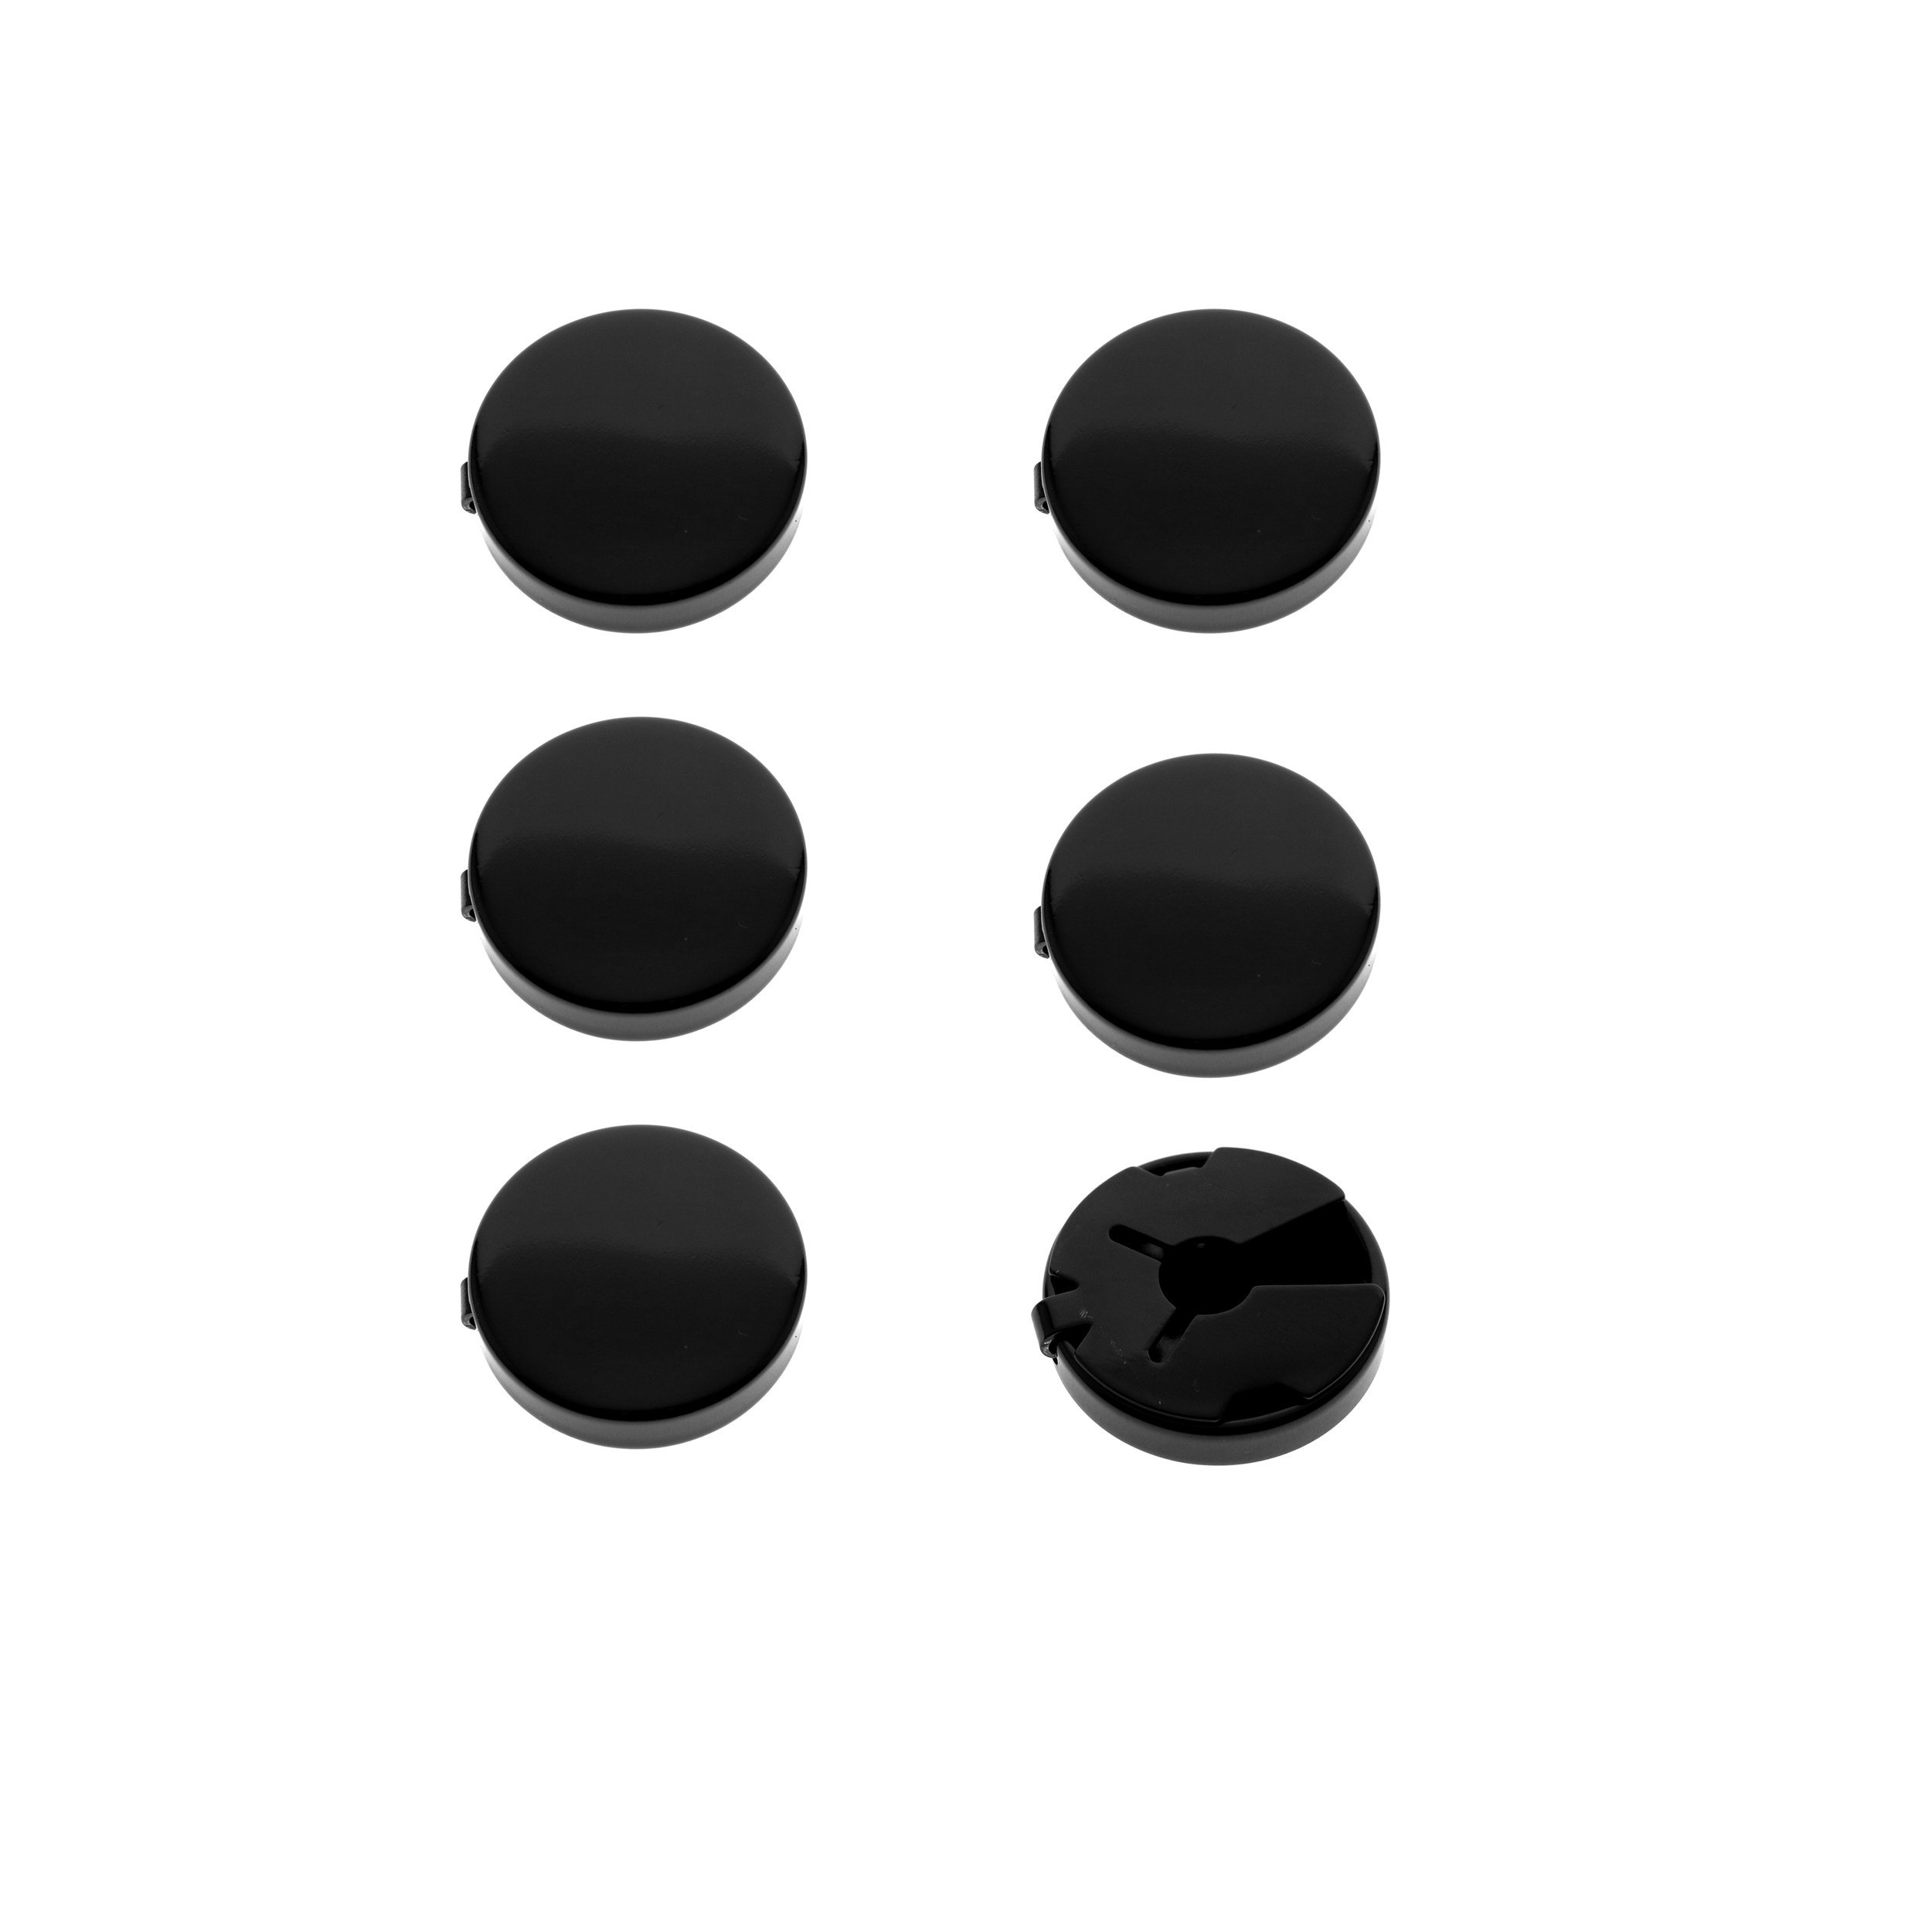 Ms.Iconic 17.5MM Gun Black Round Cuff Button Cover Cuff Links for Wedding Formal Shirt 6Pcs/set (17.5MM Black)